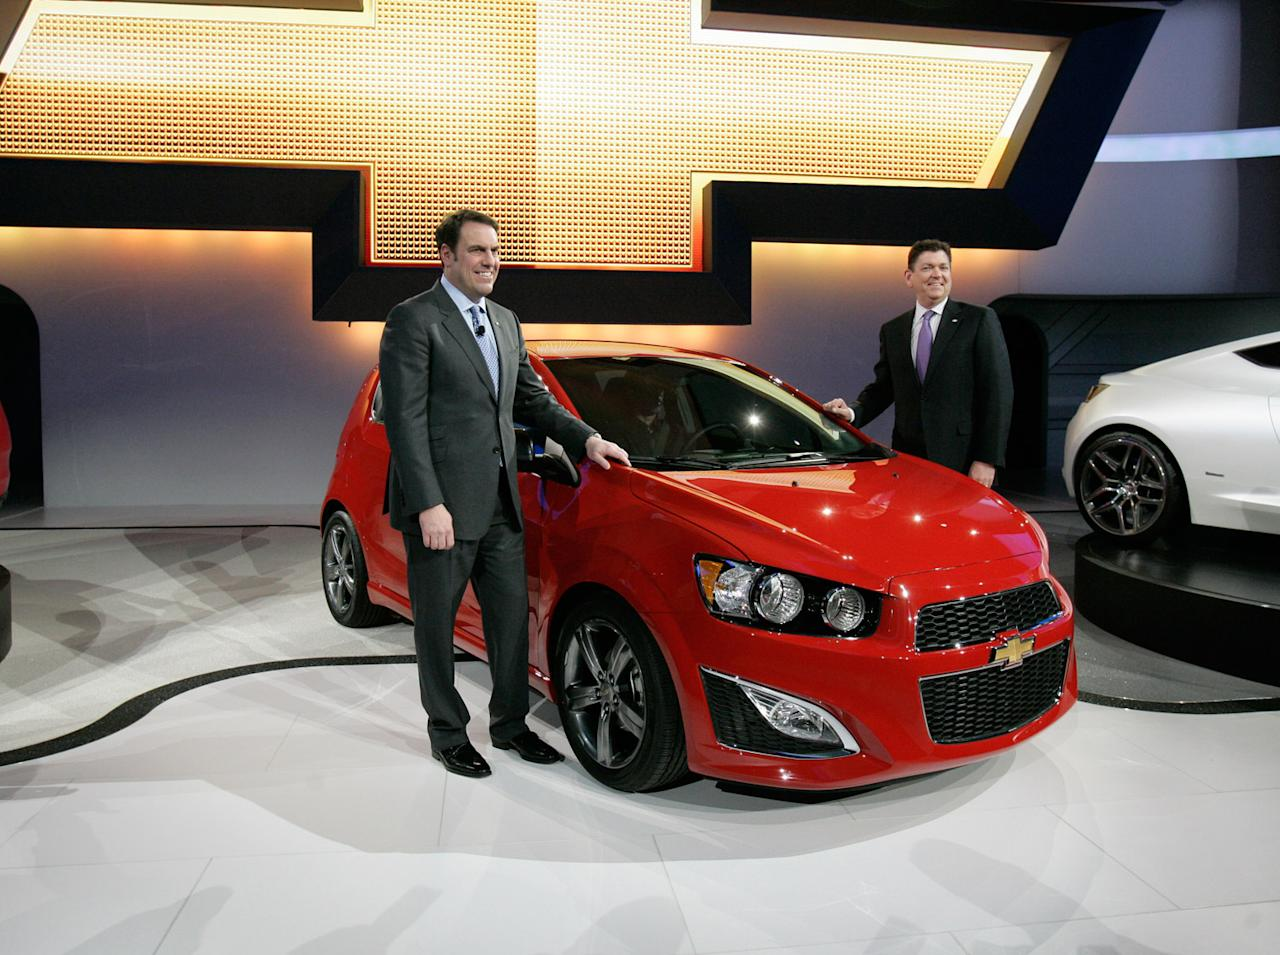 """<b><a href=""""http://autos.yahoo.com/chevrolet/sonic/2014/ls-manual-hatchback/"""" target=""""_blank"""">Chevy Sonic Hatchback</a></b><br />MSRP: $14,770<br />MPG:26 City/35 Hwy<br /><br />This subcompact out of Detroit allows you """"Buy American"""" street cred with a 1.8 L four-cylinder turbocharged engine and nice lines to boot. A Testarossa this is not--with only 138 horses under the hood, but it will merge you onto the highway just fine and more than make up for its shortcomings in the money you save."""